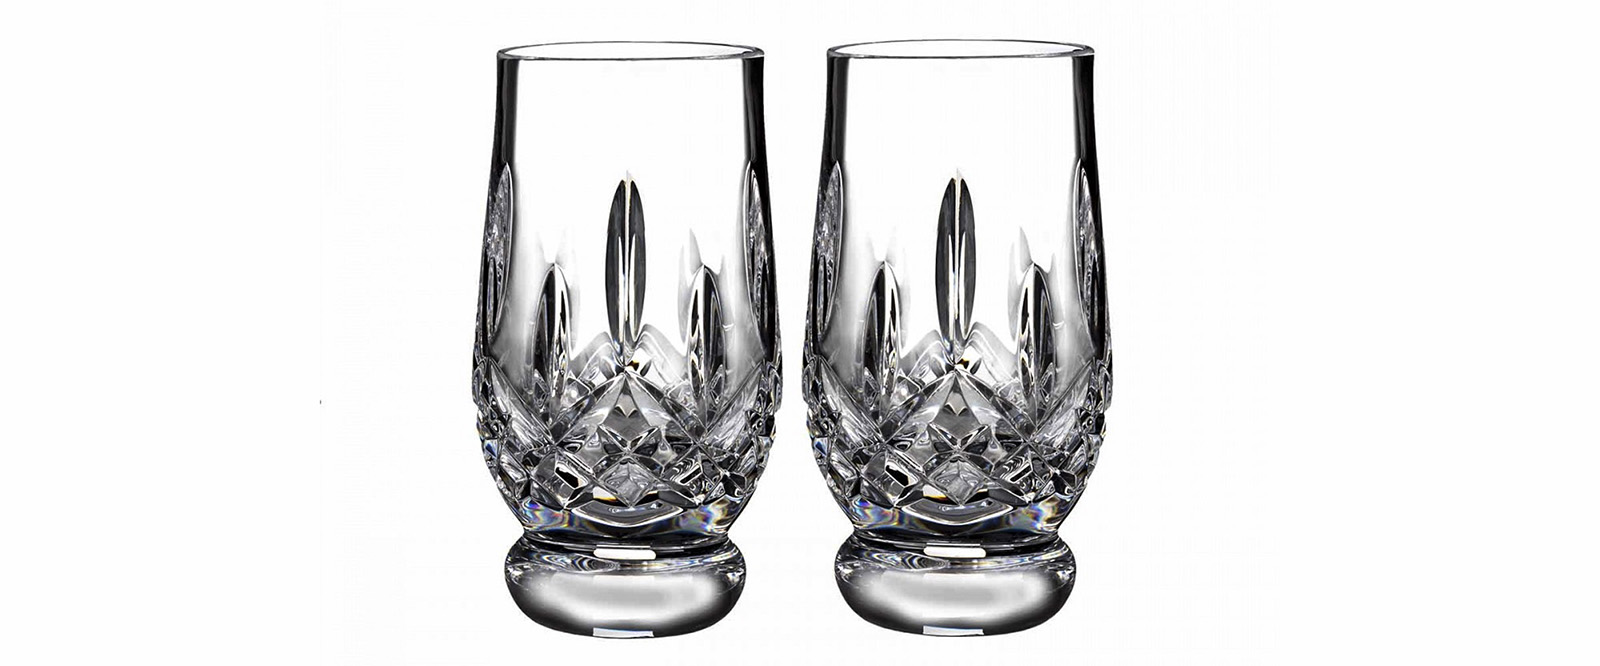 The Waterford footed tasting tumbler